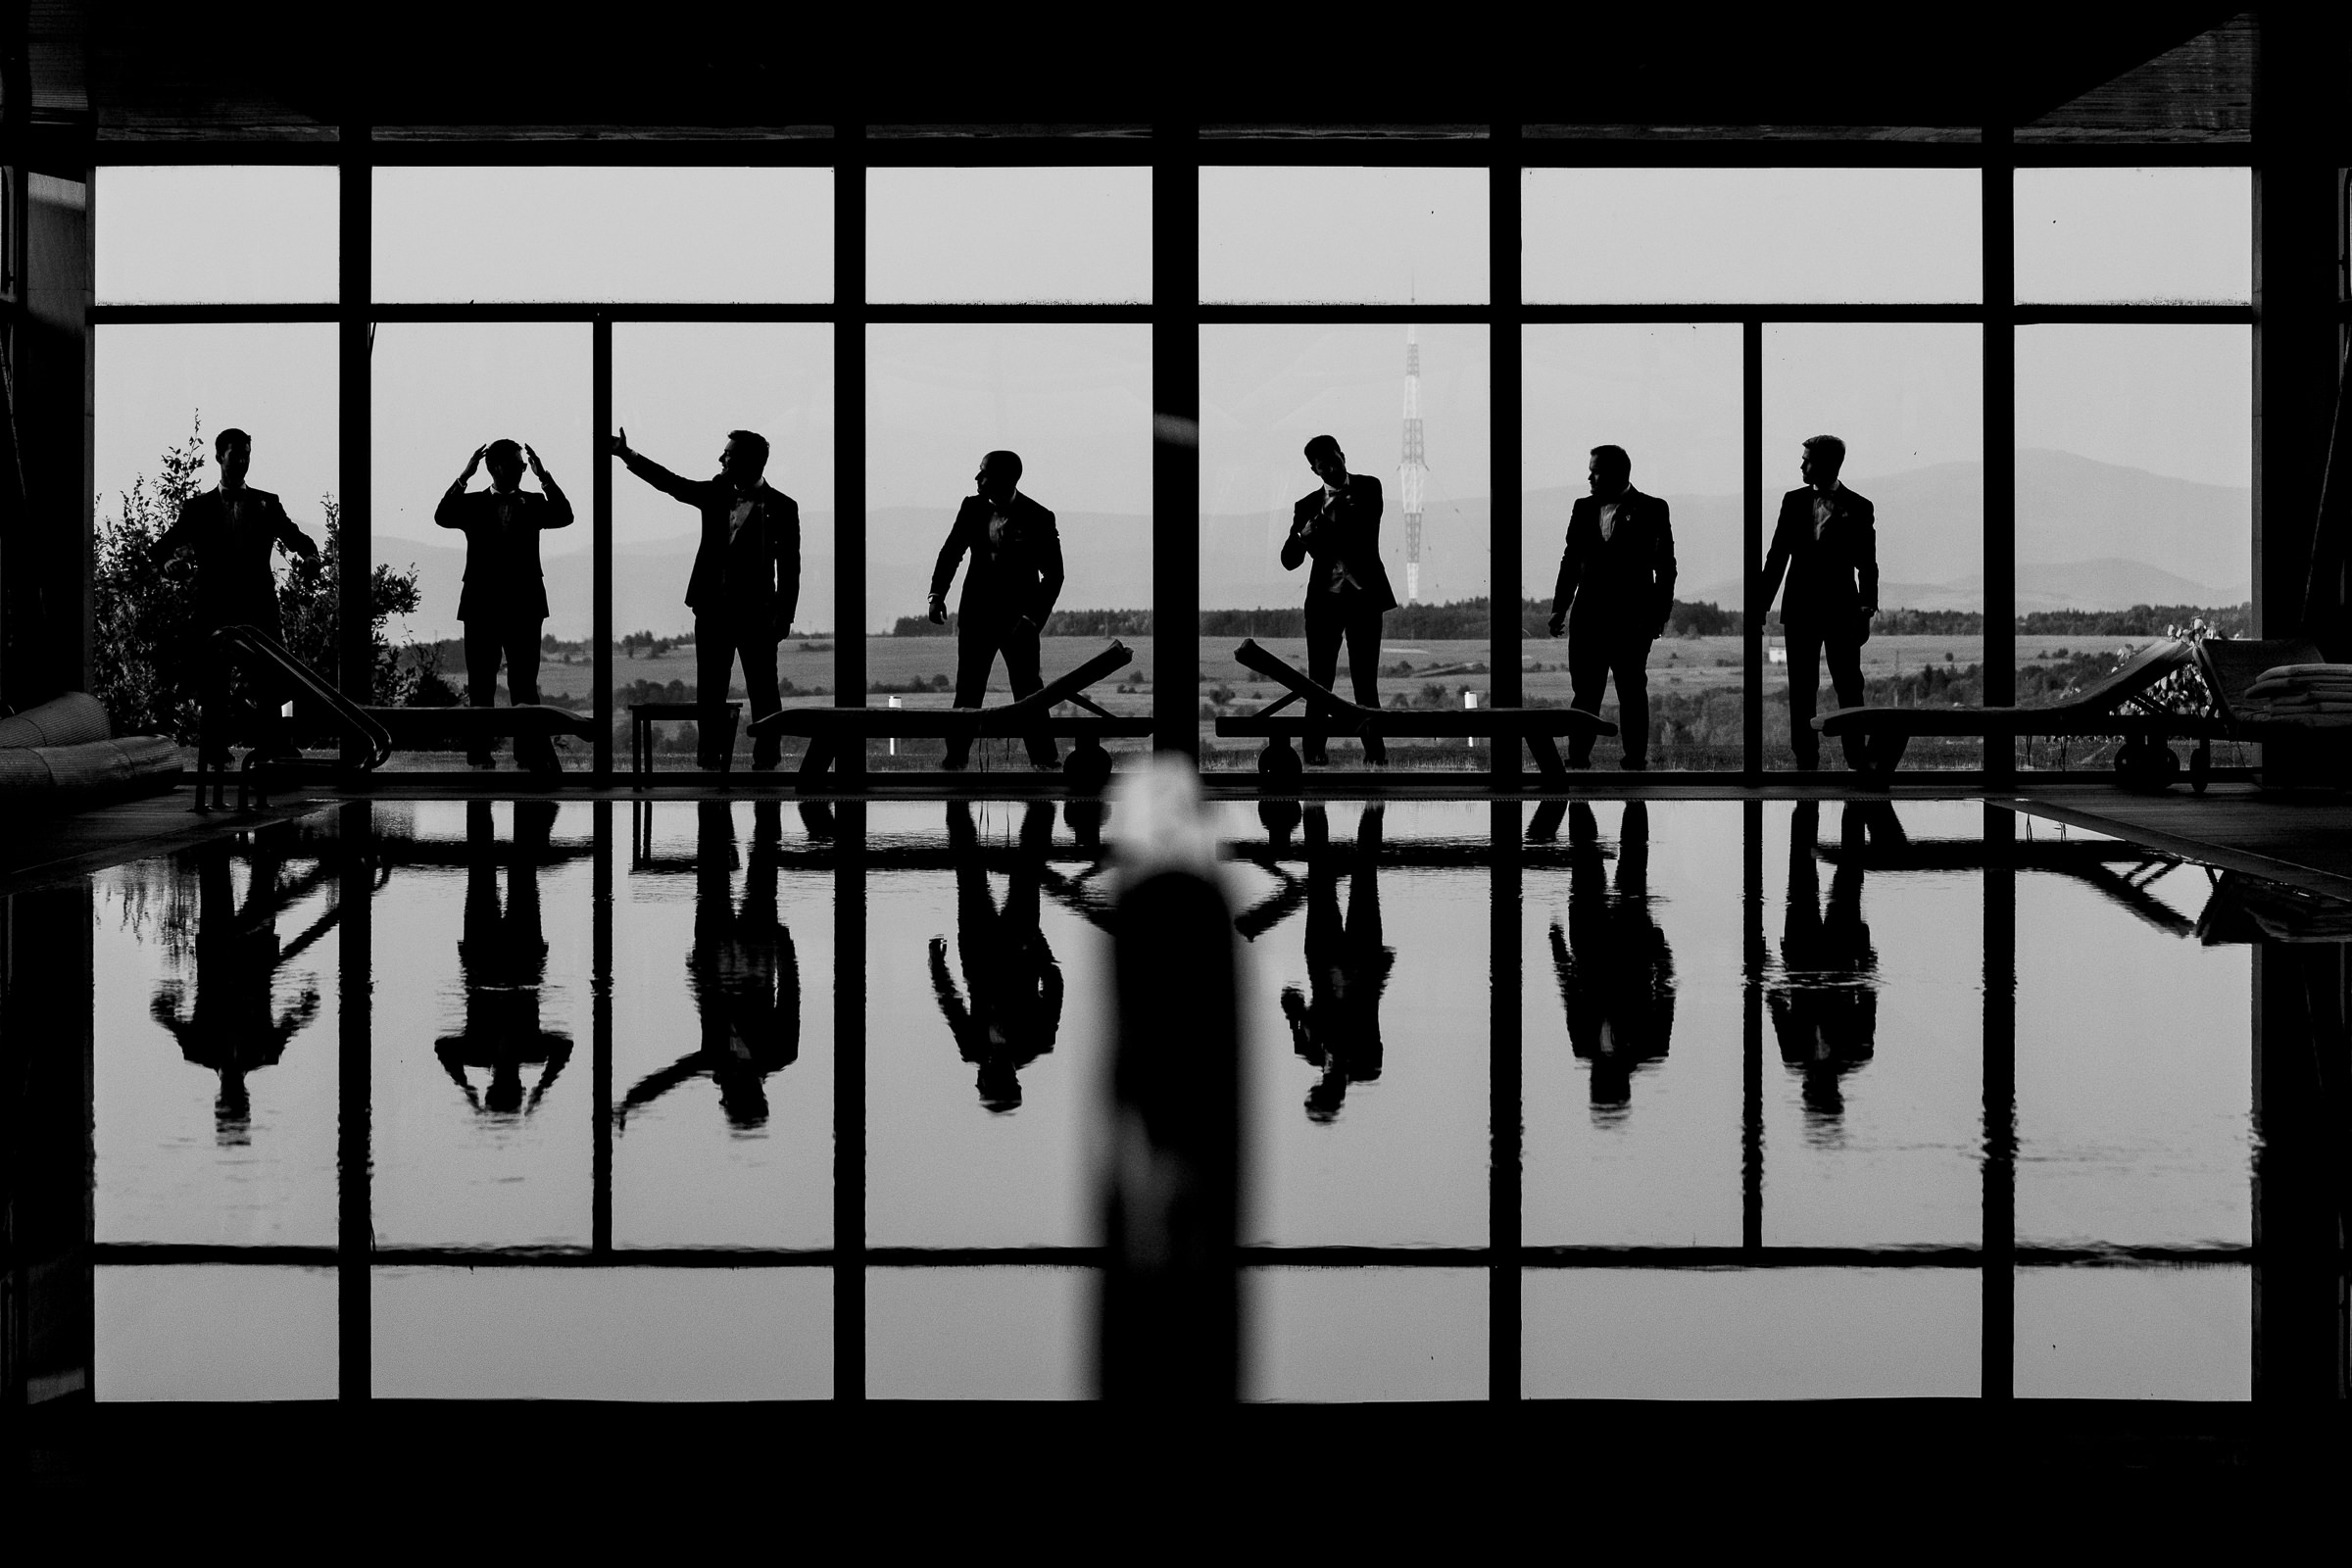 Silhouettes of grooms reflected in pool - photo by Deliysky Studio